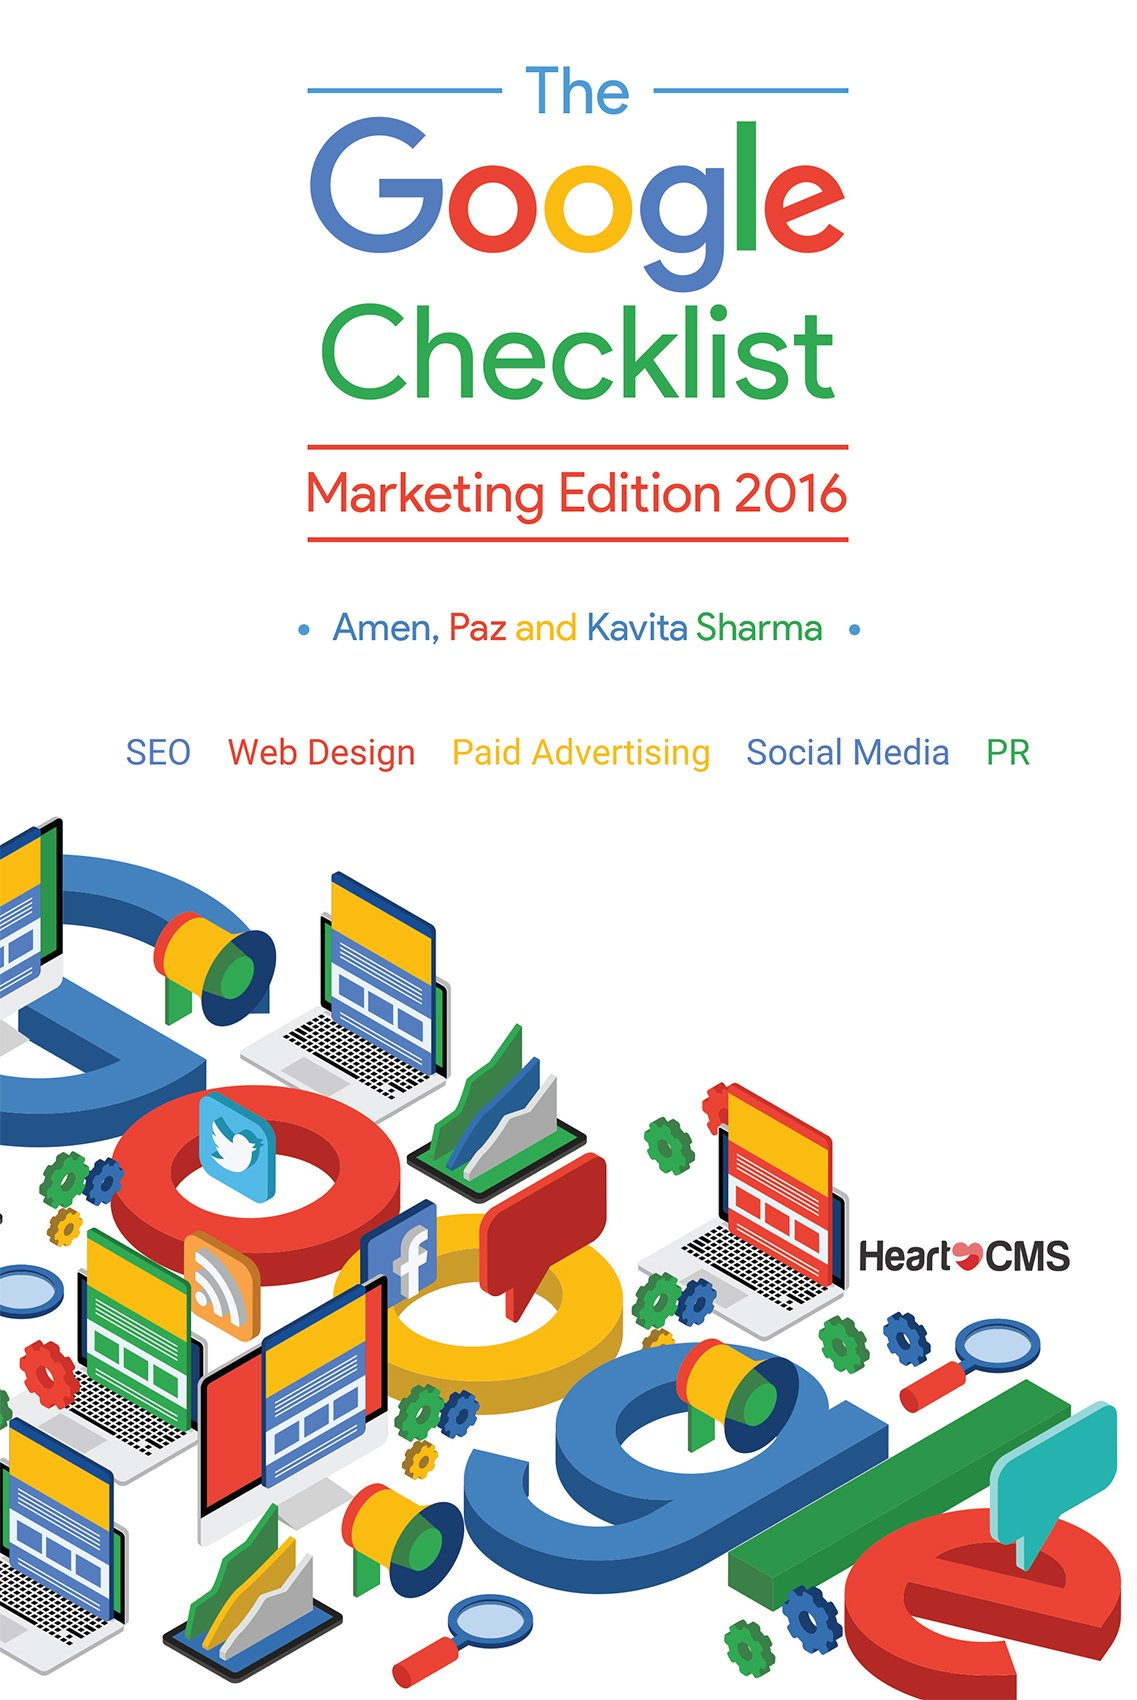 Download The Google Checklist: Marketing Edition 2016: SEO, Web Design, Paid Advertising, Social Media, PR. (English Edition)